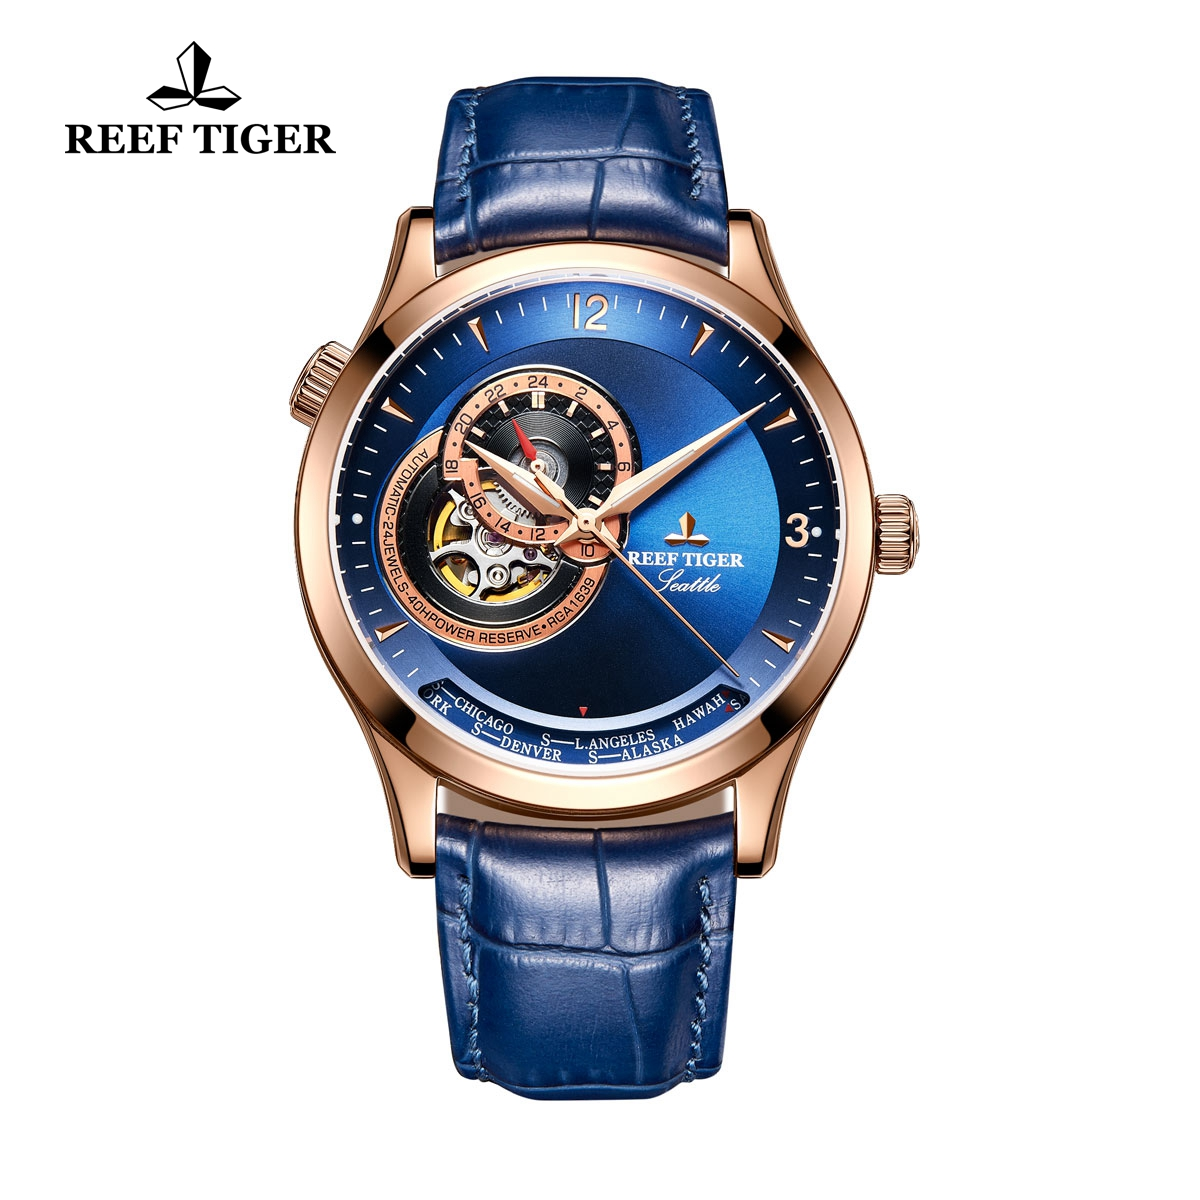 Reef Tiger Seattle Sailing Rose Gold Blue Dial Watch With Tourbillon Automatic Watch RGA1693-PLL